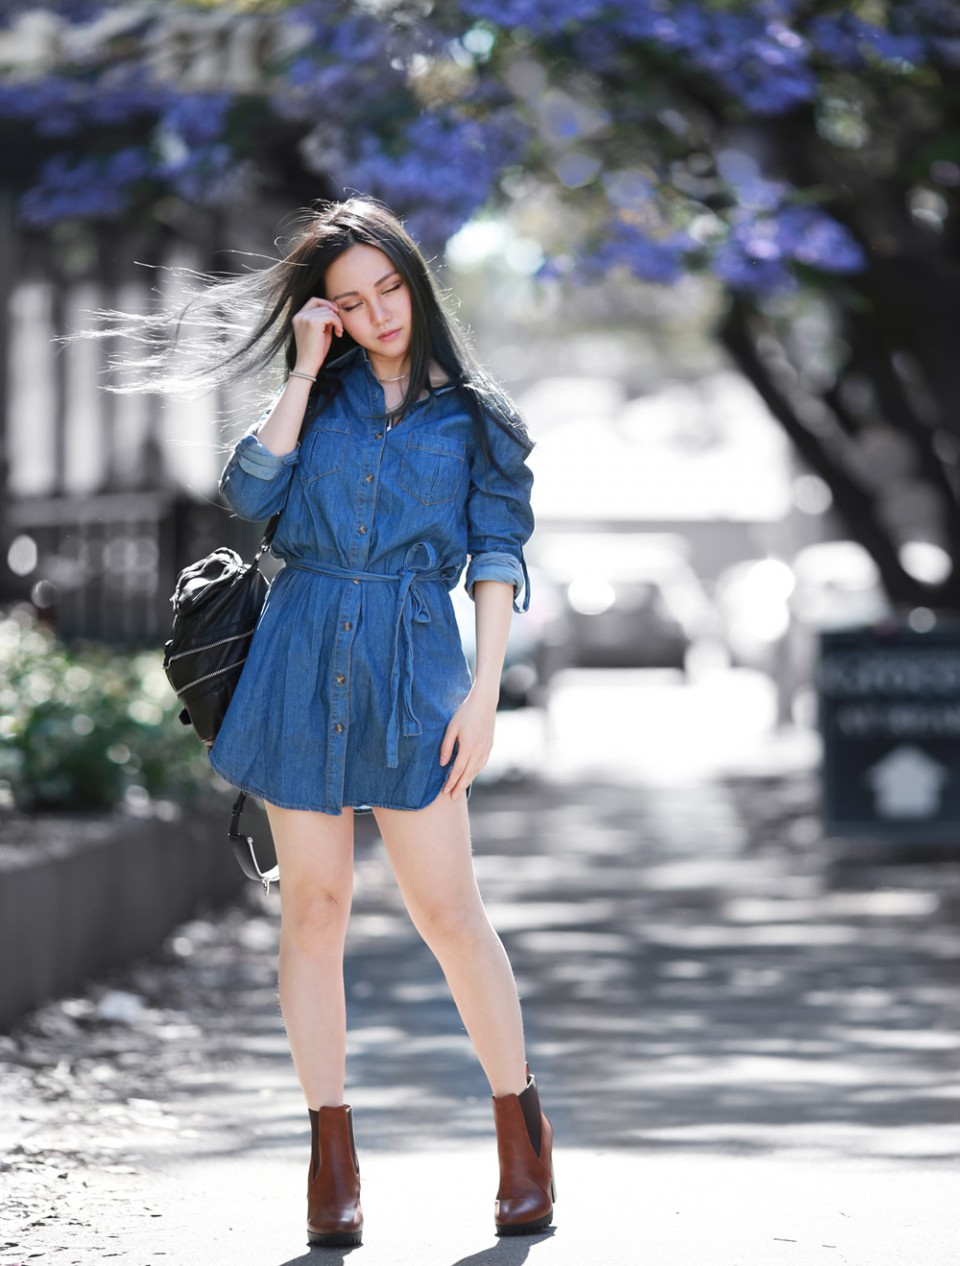 Denim_dress_chloeting_01